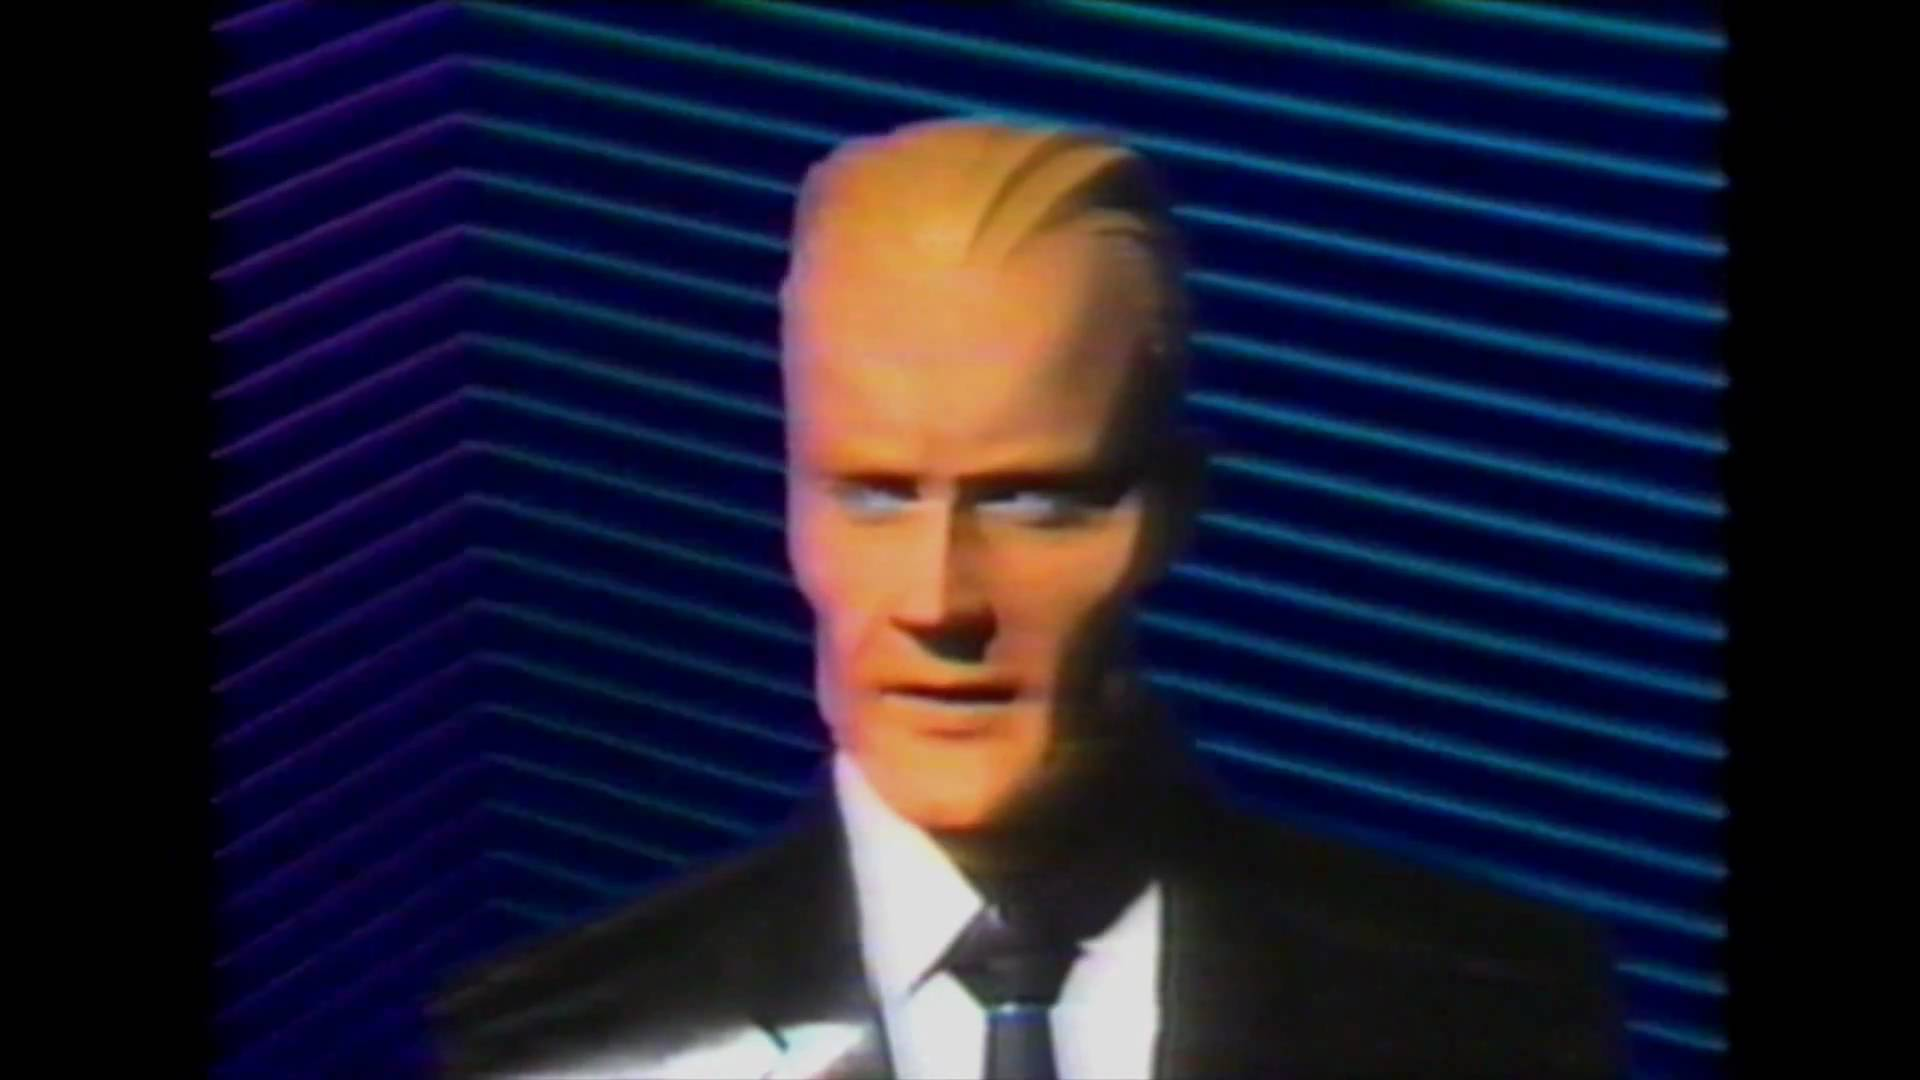 MAX HEADROOM: THE MOTION PICTURE